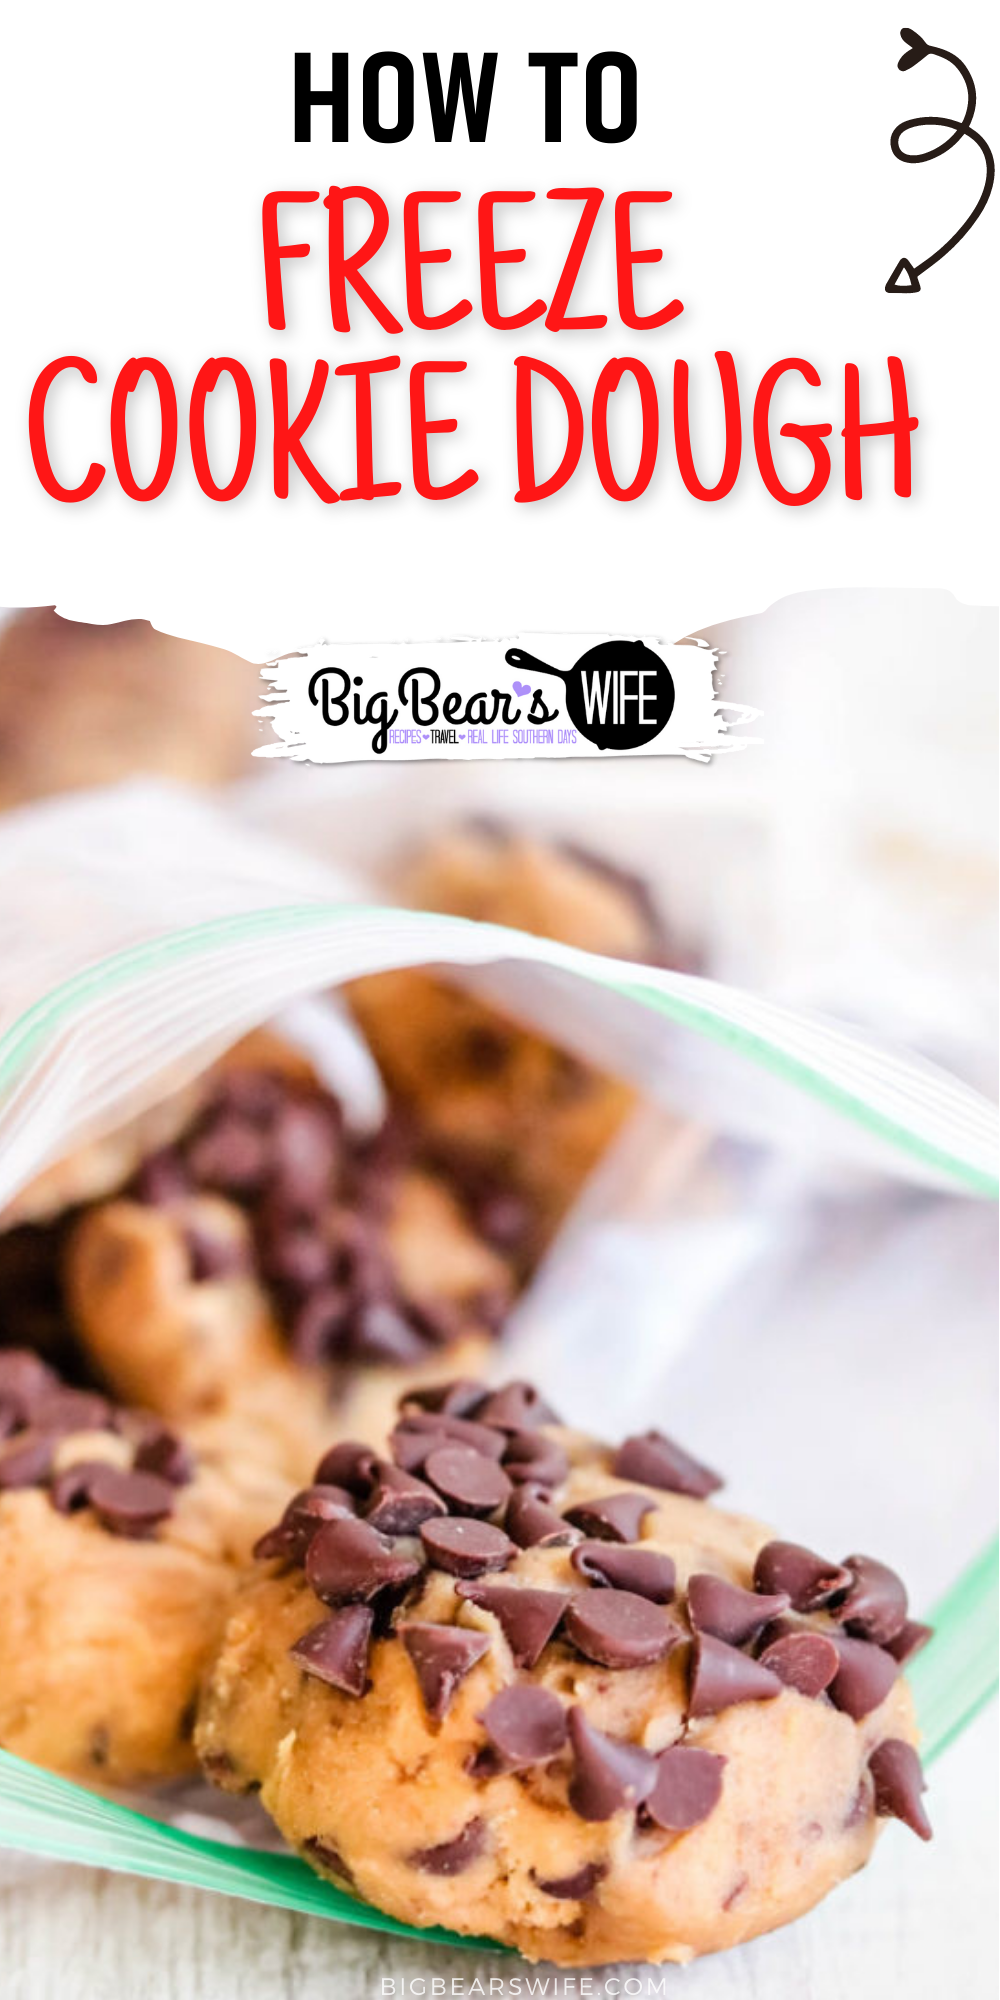 Freshly baked cookies are wonderful but sometimes you don't want to bake up a couple dozen cookies just to enjoy one or two! Learn How to Freeze Cookie Dough for Perfect for Freshly Baked Cookies Anytime you want!